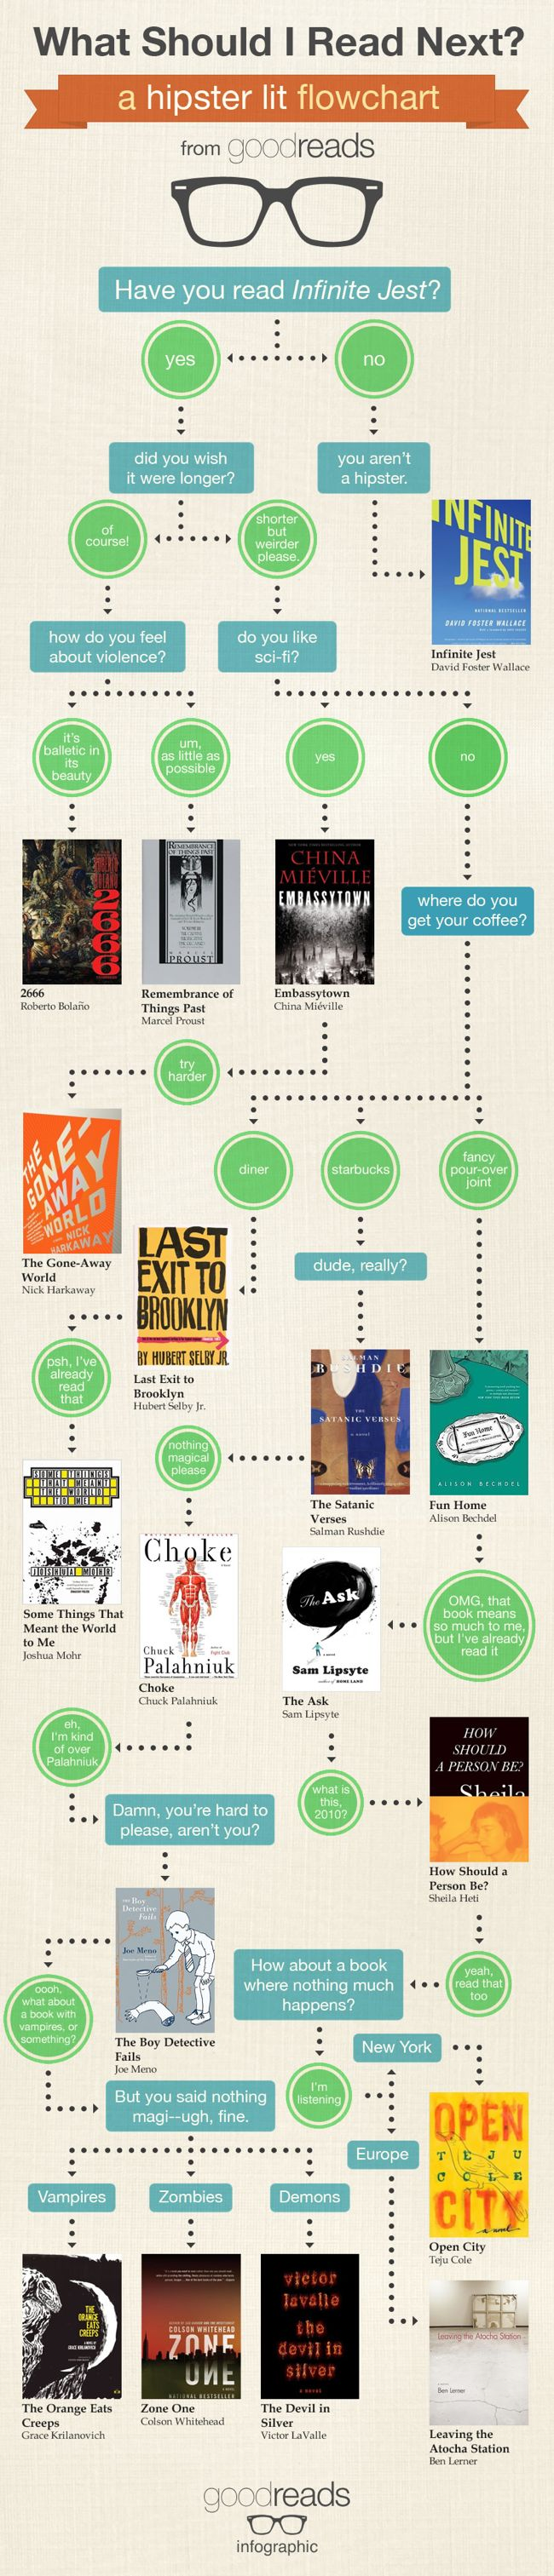 What Should I Read Next? A hipster lit flowchart - from GoodReads